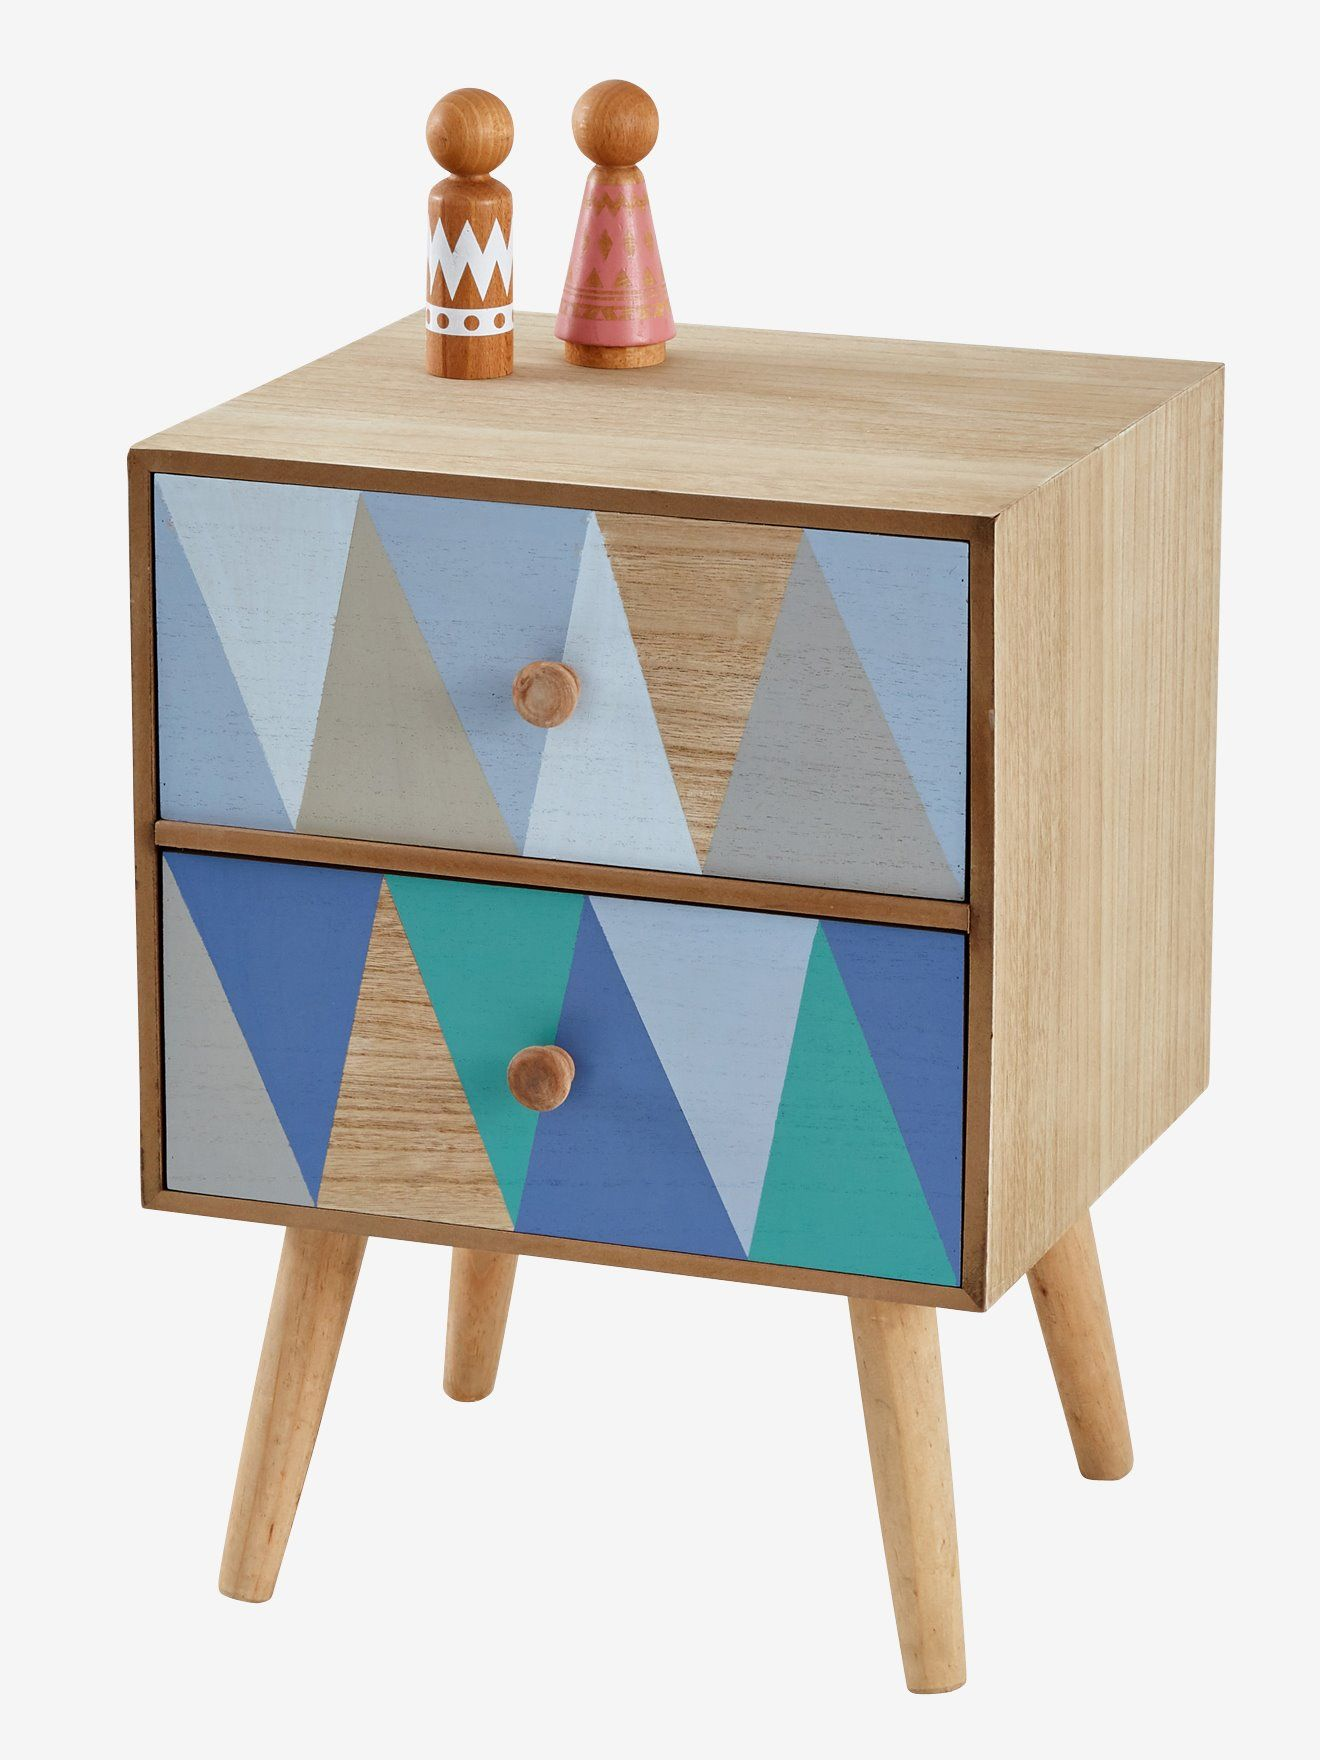 Petite Table Chevet Table De Chevet Losanges Bois Multicolore En 2019 Table De